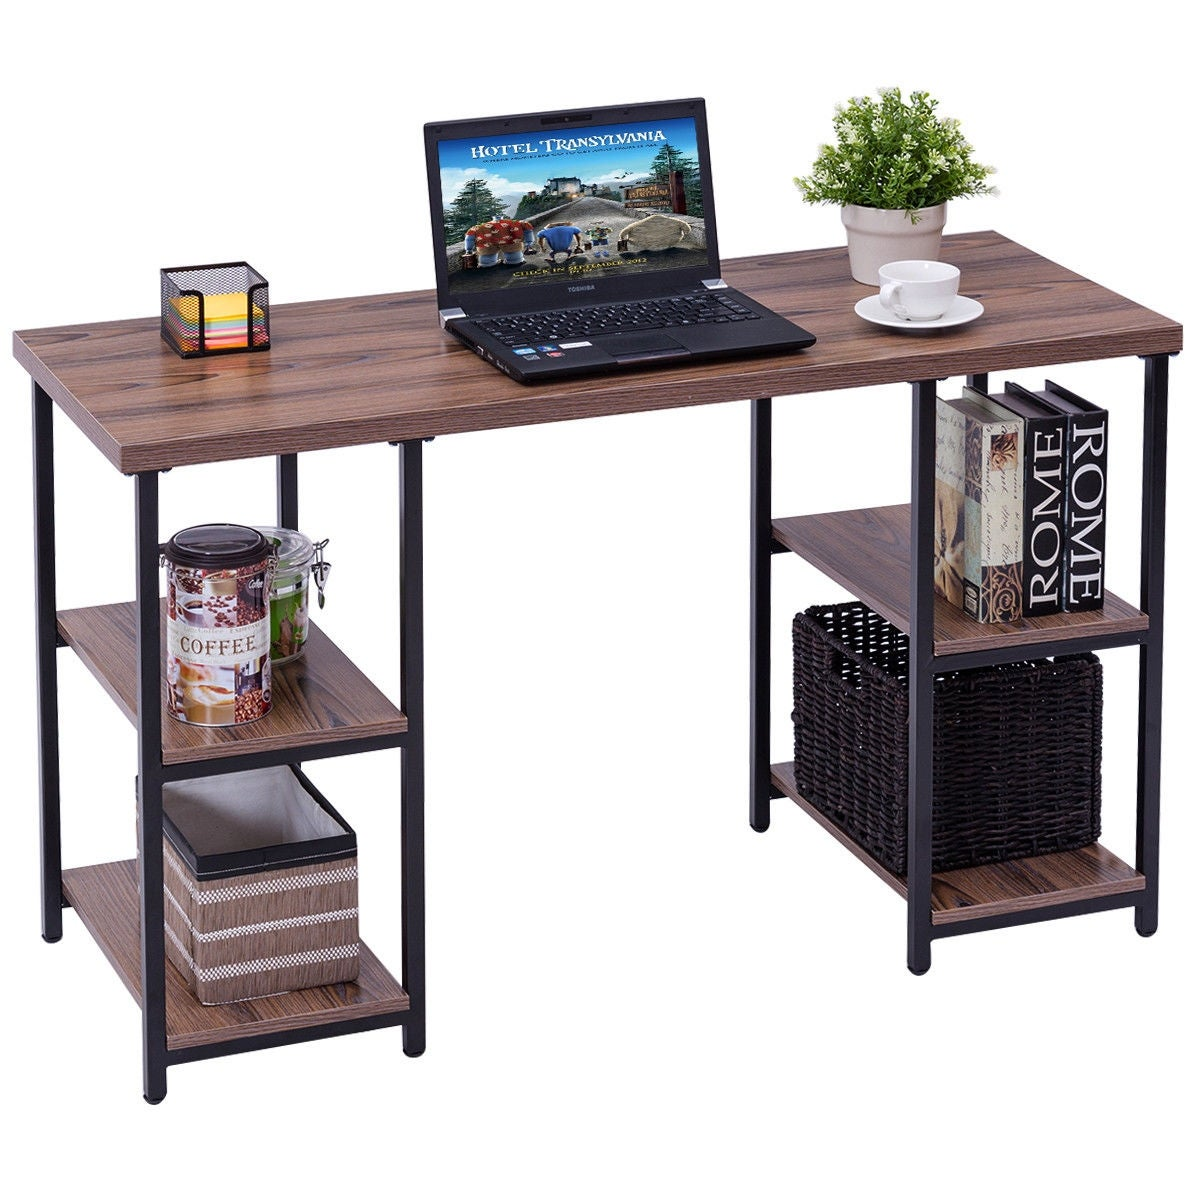 Superior Costway Computer Desk PC Laptop Table Writing Study Workstation With 4  Storage Shelves   Free Shipping Today   Overstock   24814034